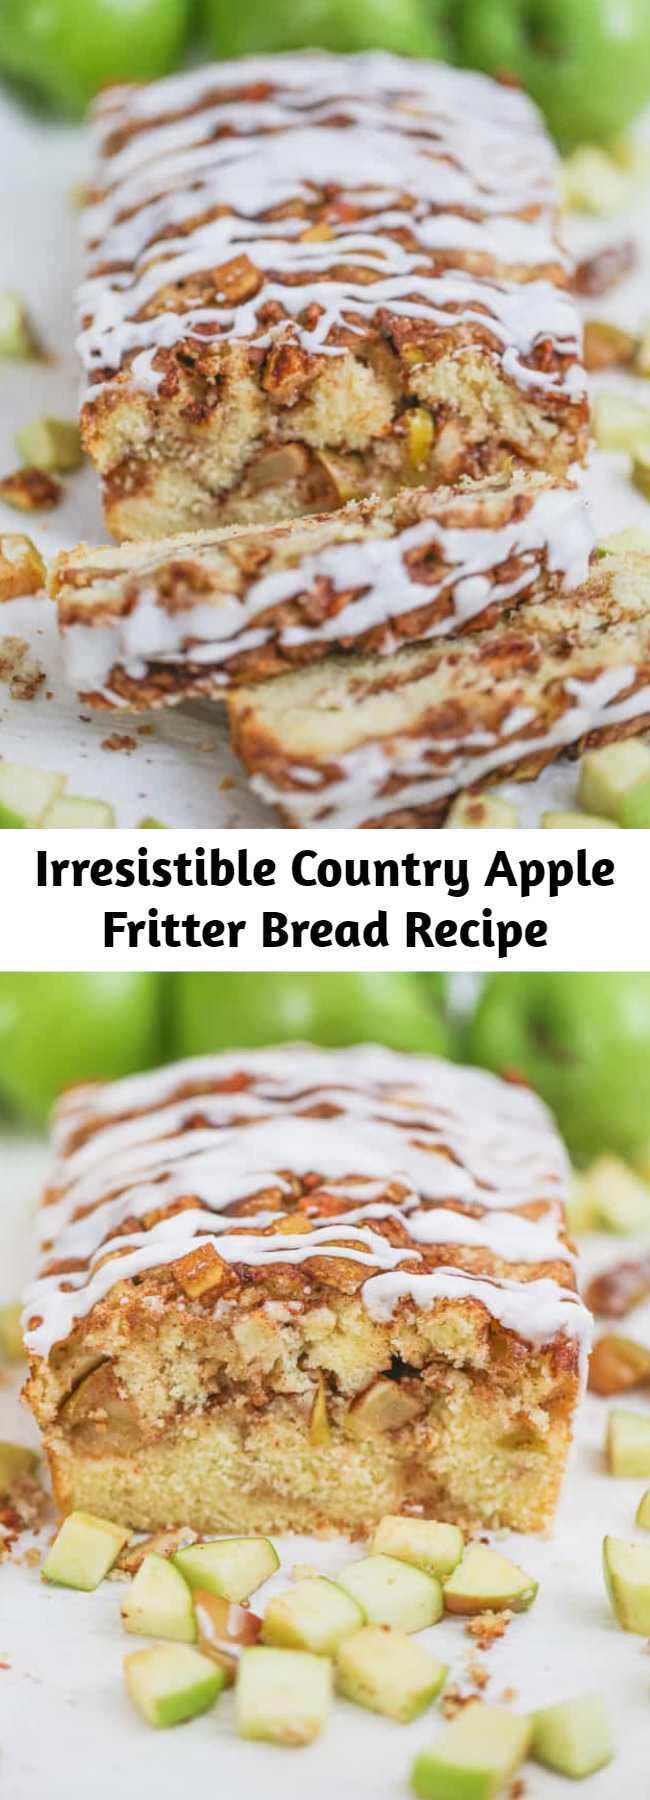 Irresistible Country Apple Fritter Bread Recipe - Have you ever had an apple fritter transformed into fluffy, buttery, white cake loaf with chunks of juicy apples and layers of brown sugar and cinnamon swirled inside and on top? Drizzle with some old-fashioned creme glaze and devour! It's so moist, and delicious. Give it up my sweet friend!  You cannot resist the temptation of Awesome Country Apple Fritter Bread!!! #apple #bread #quickbread #fritter #baking #fall #holidays